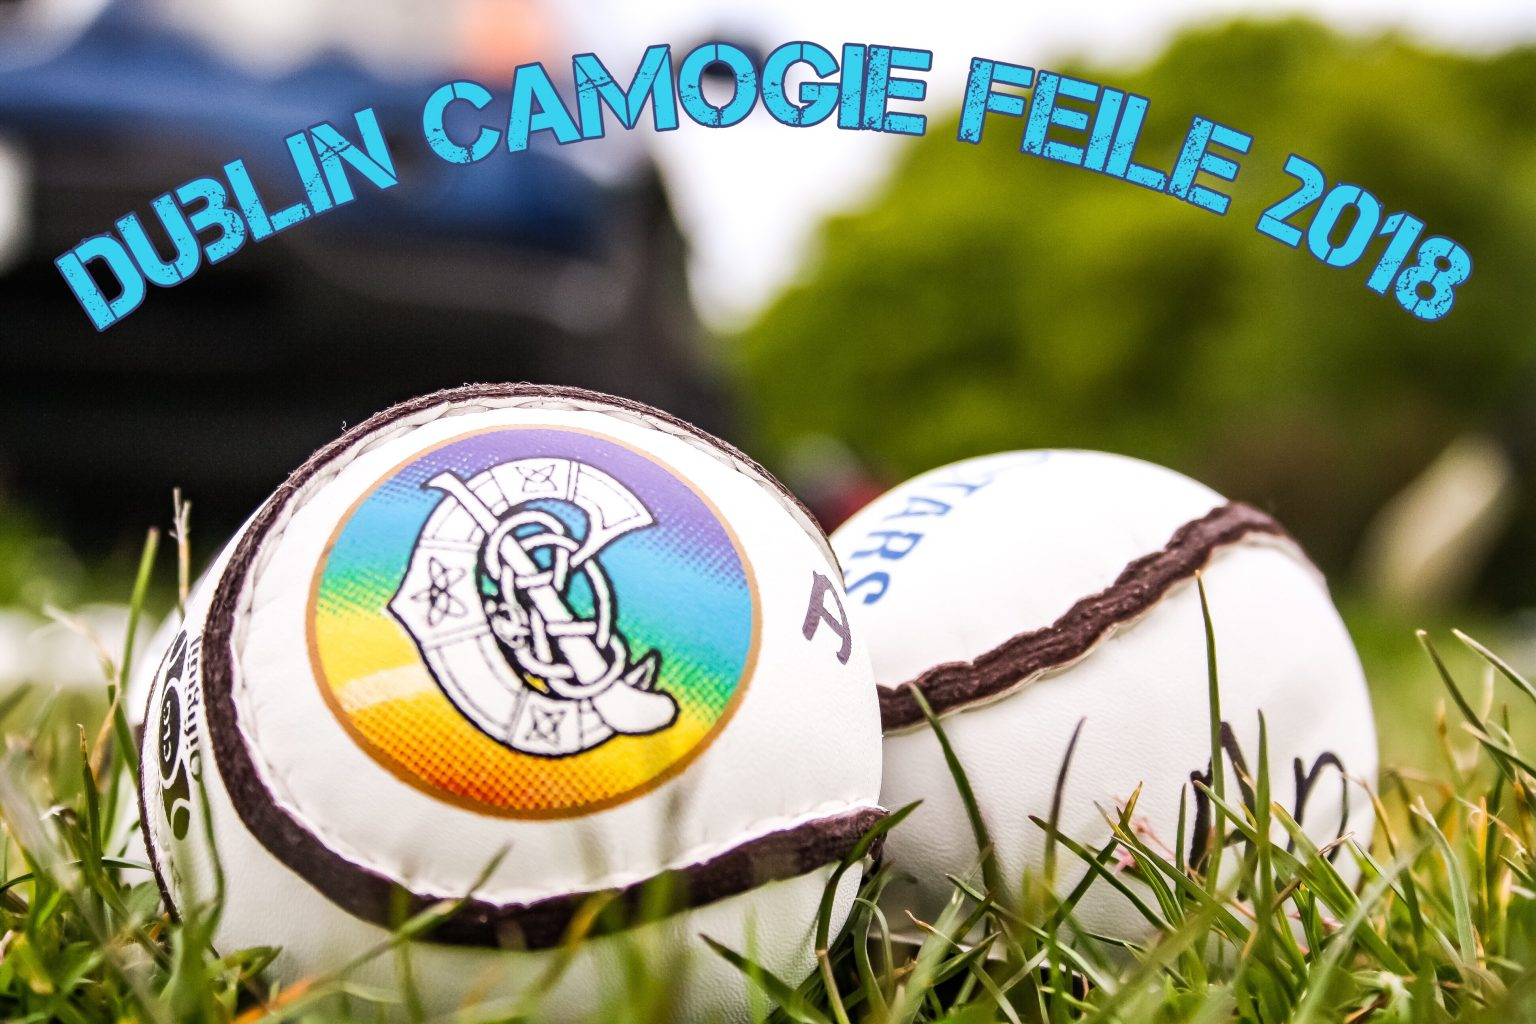 Two White Camogie Sliotars On Green Grass With the Caption Dublin Camogie Feile 2018